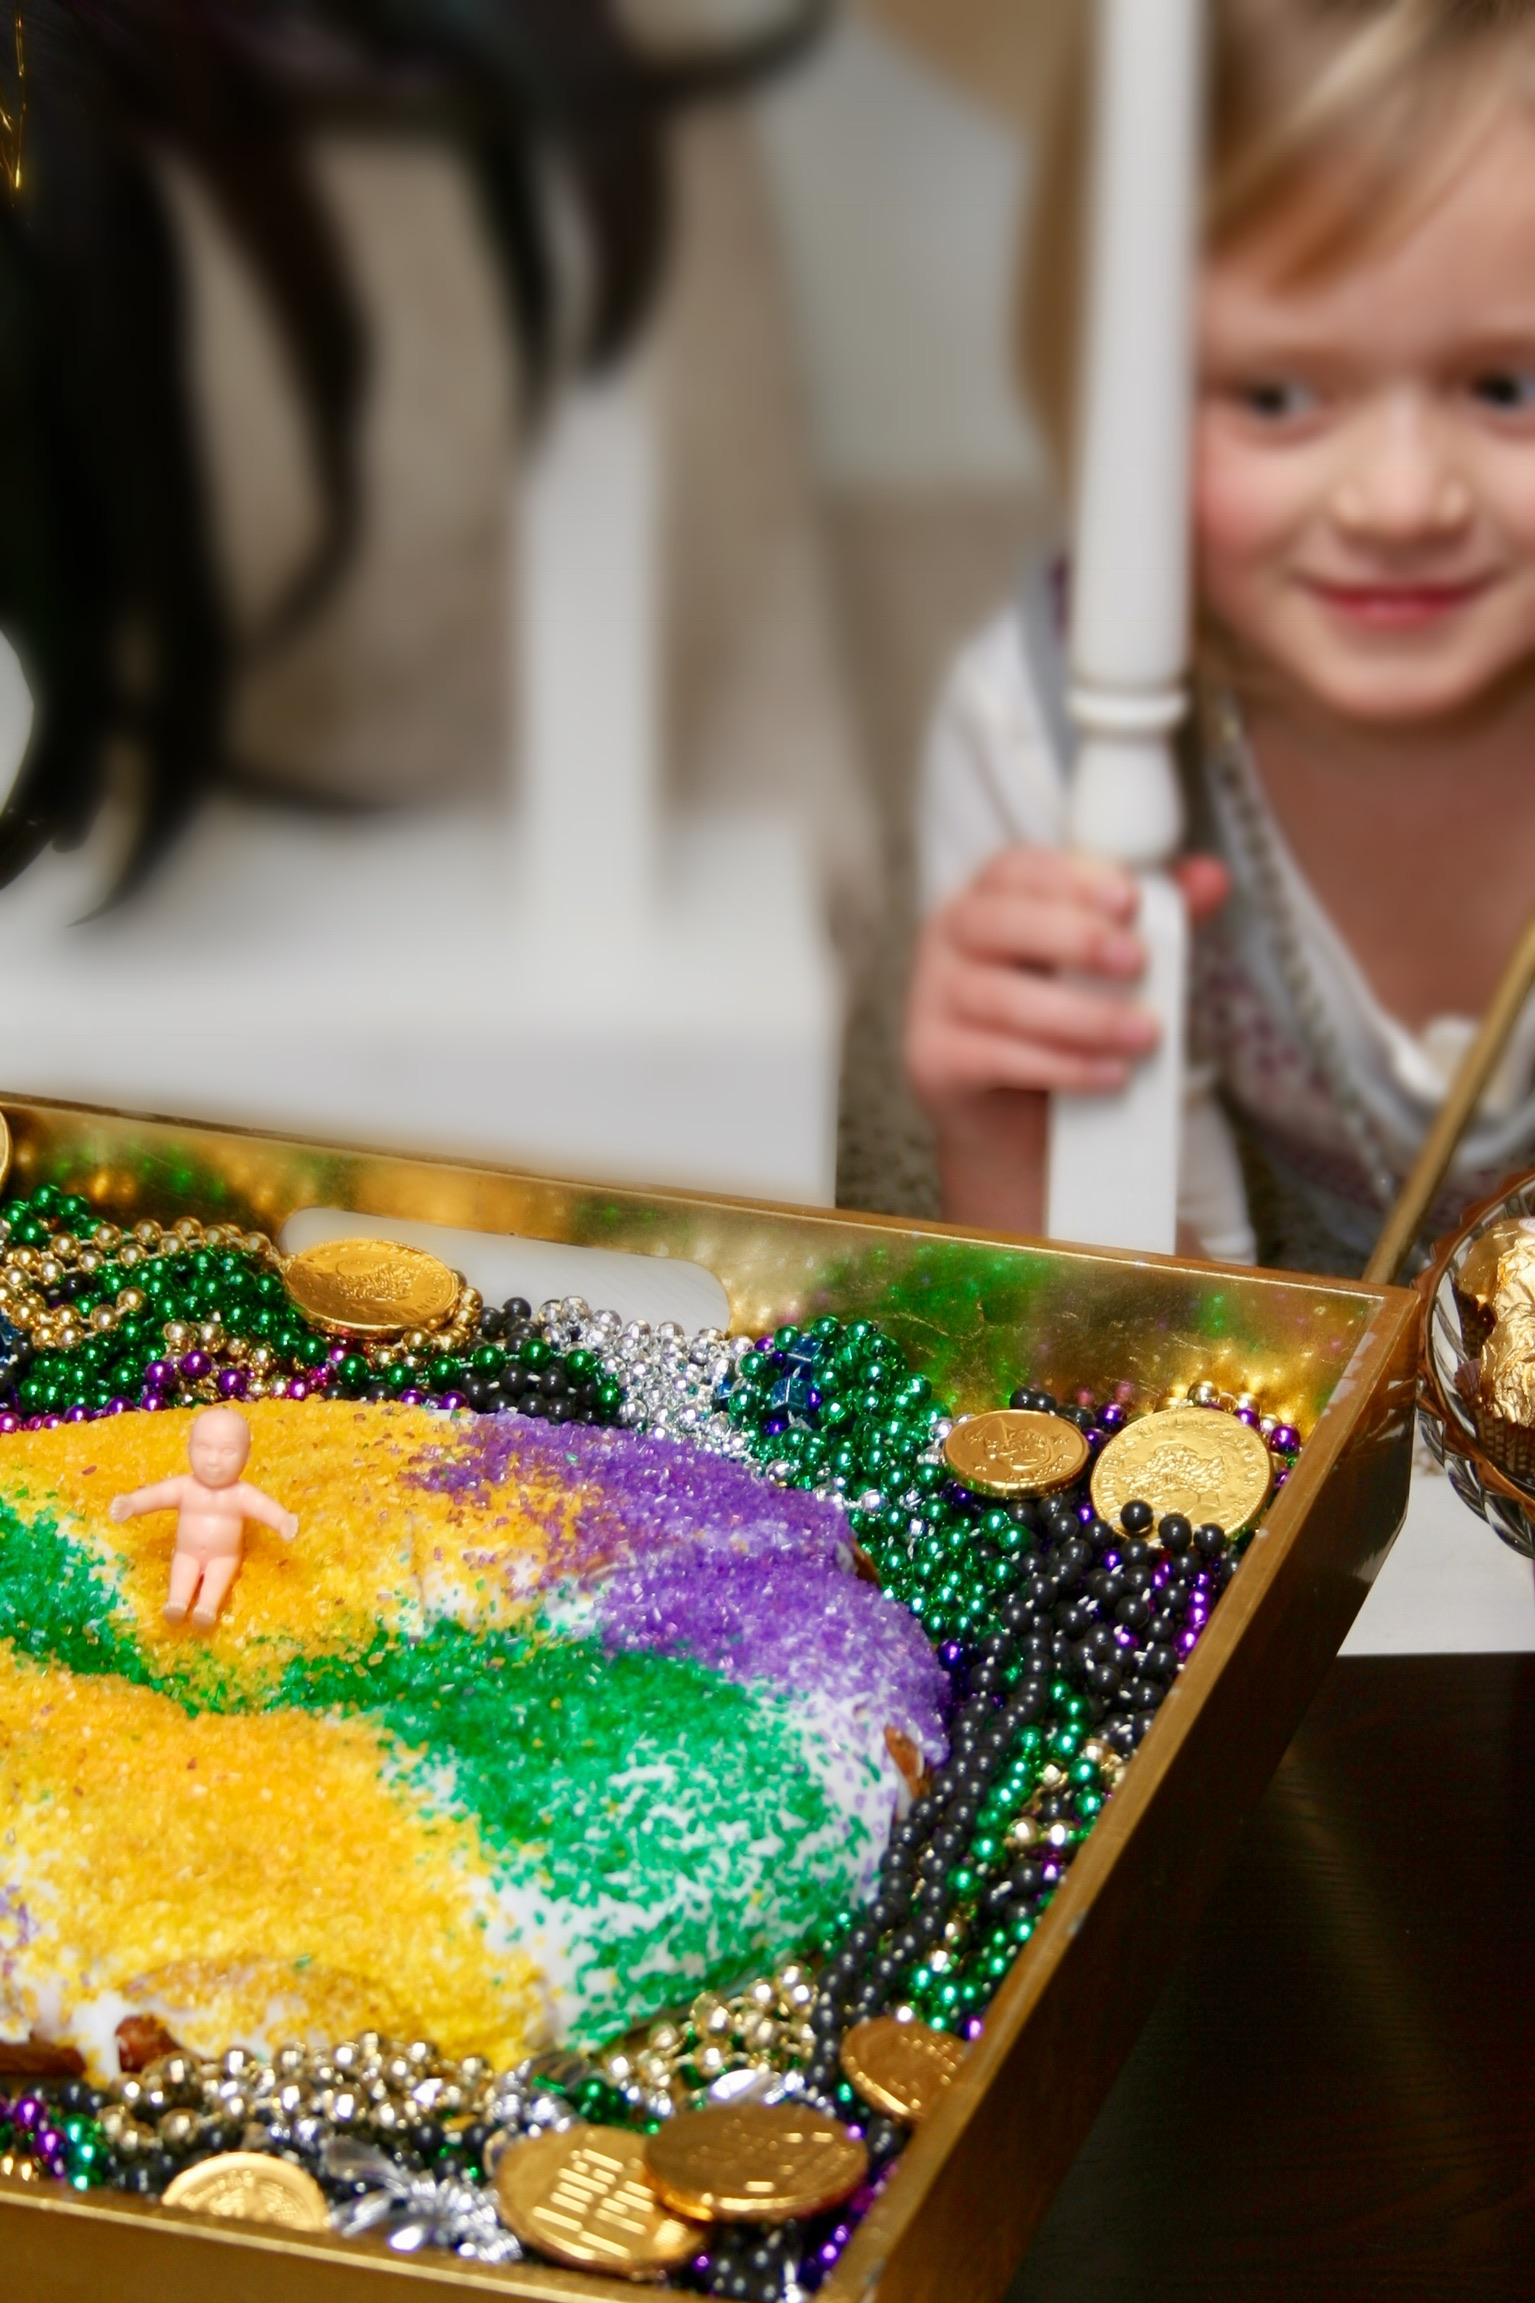 why is there a baby in the King Cake?